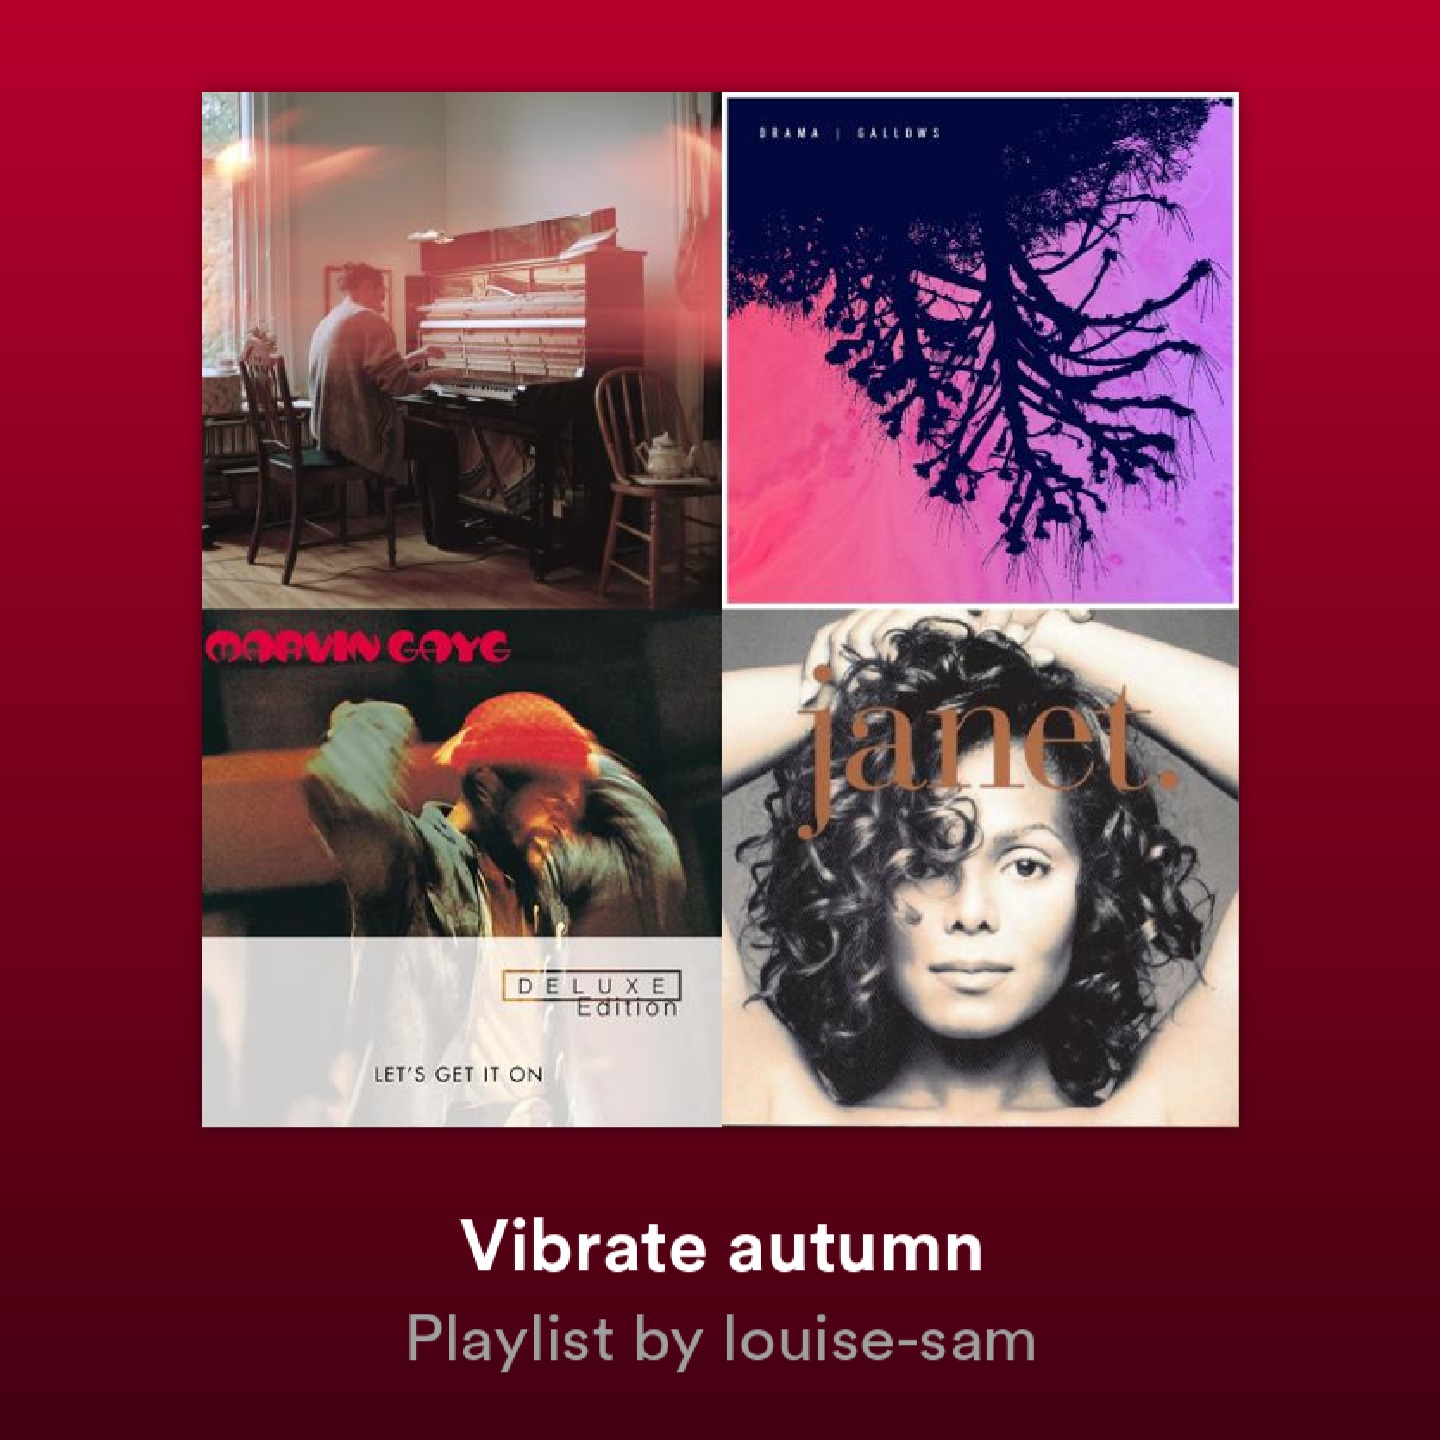 Music to ease you into the autumn hibernation